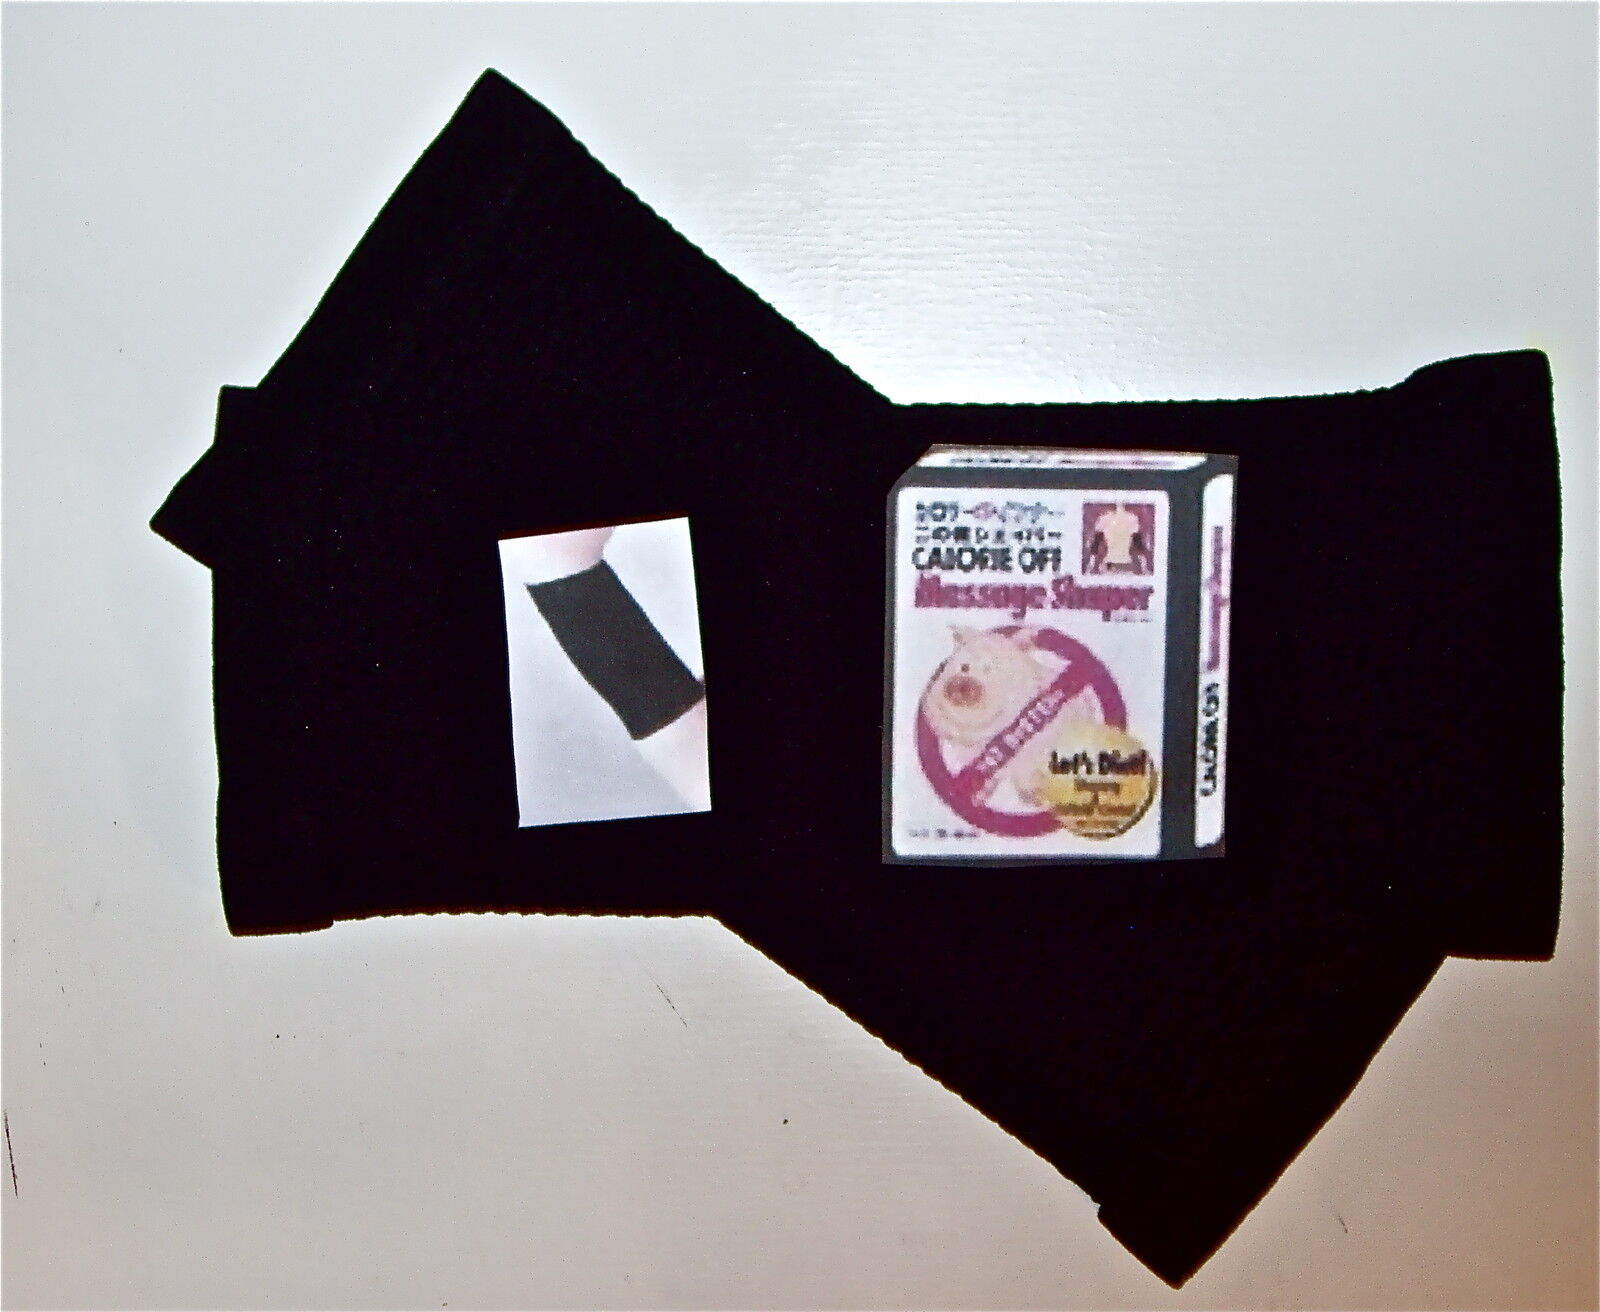 Calorie Off Pair Of Black Arm Massage Slim Trim Shapers Burning Fat Ship In Us